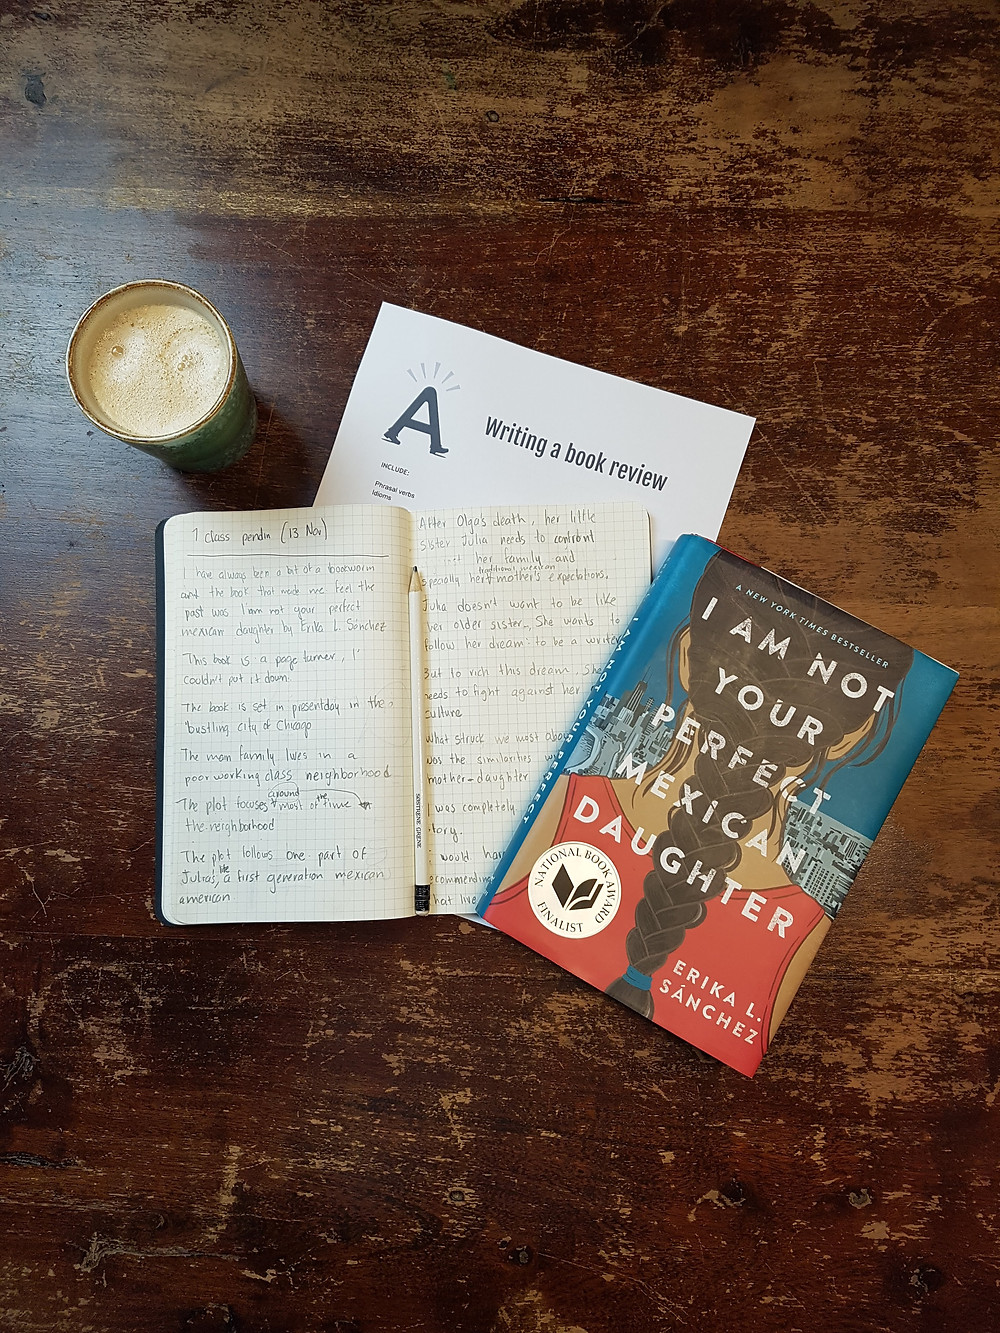 Image description: notebook with handwritten book review, a cup of coffee, and the book I am not your perfect Mexican daughter on a wooden table.